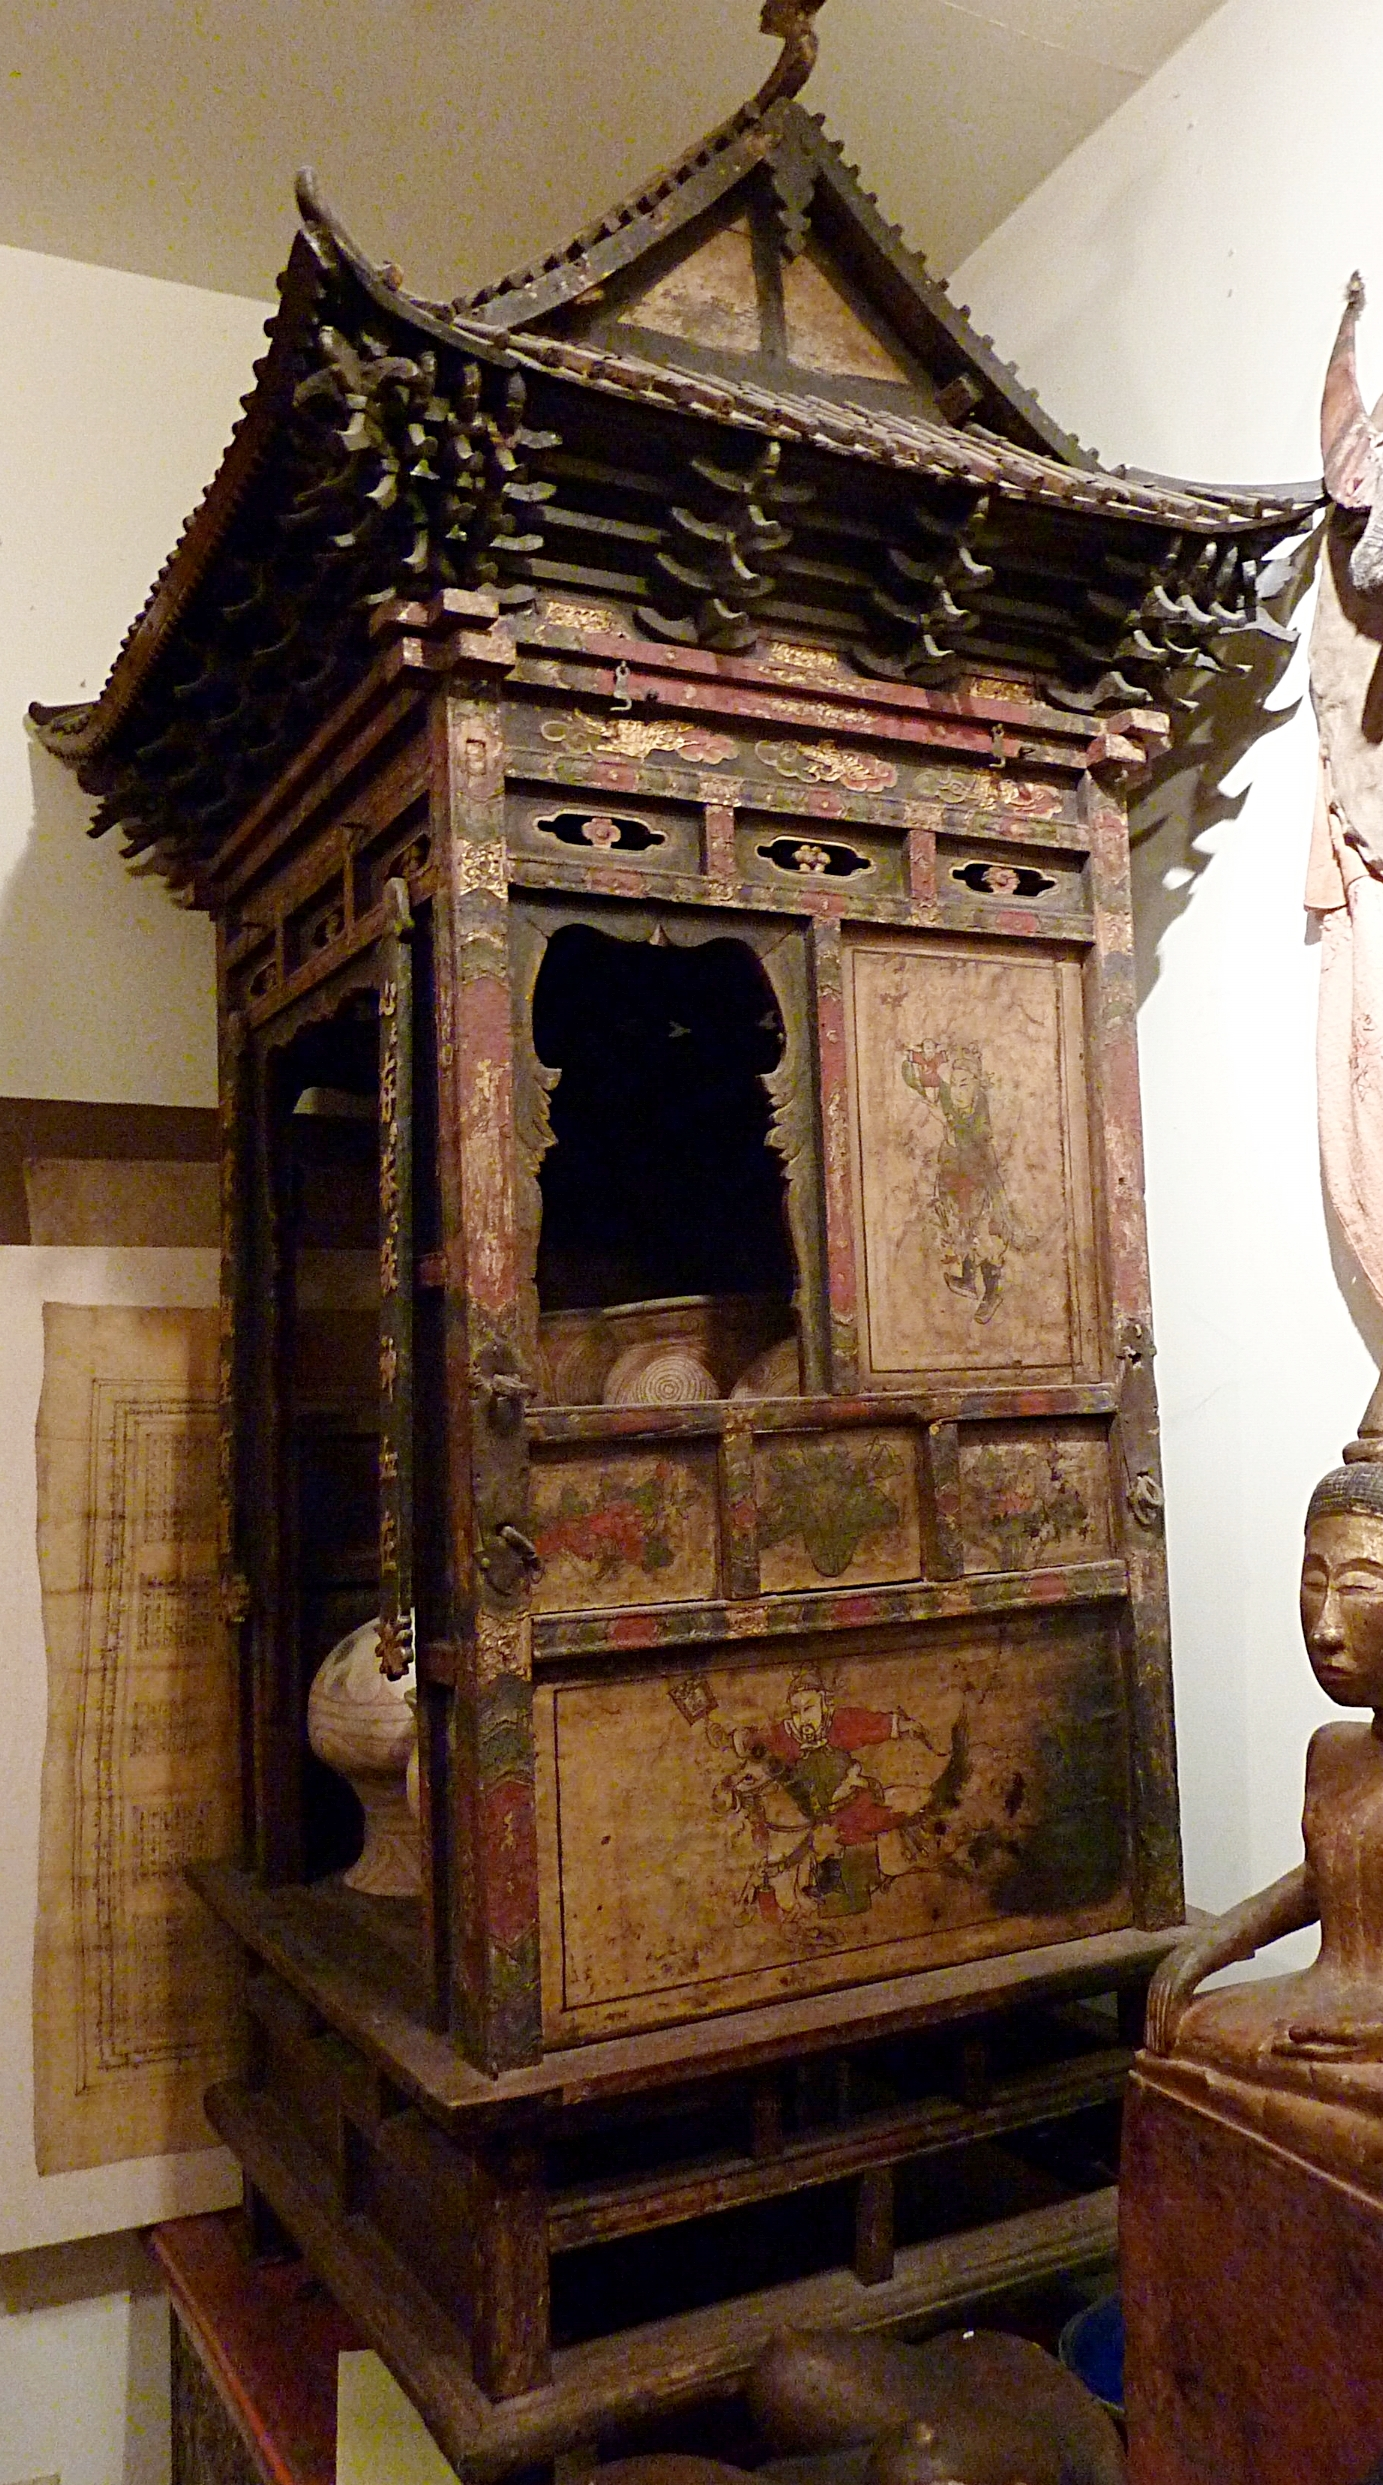 Wood altar, China, 18th or 19th century.